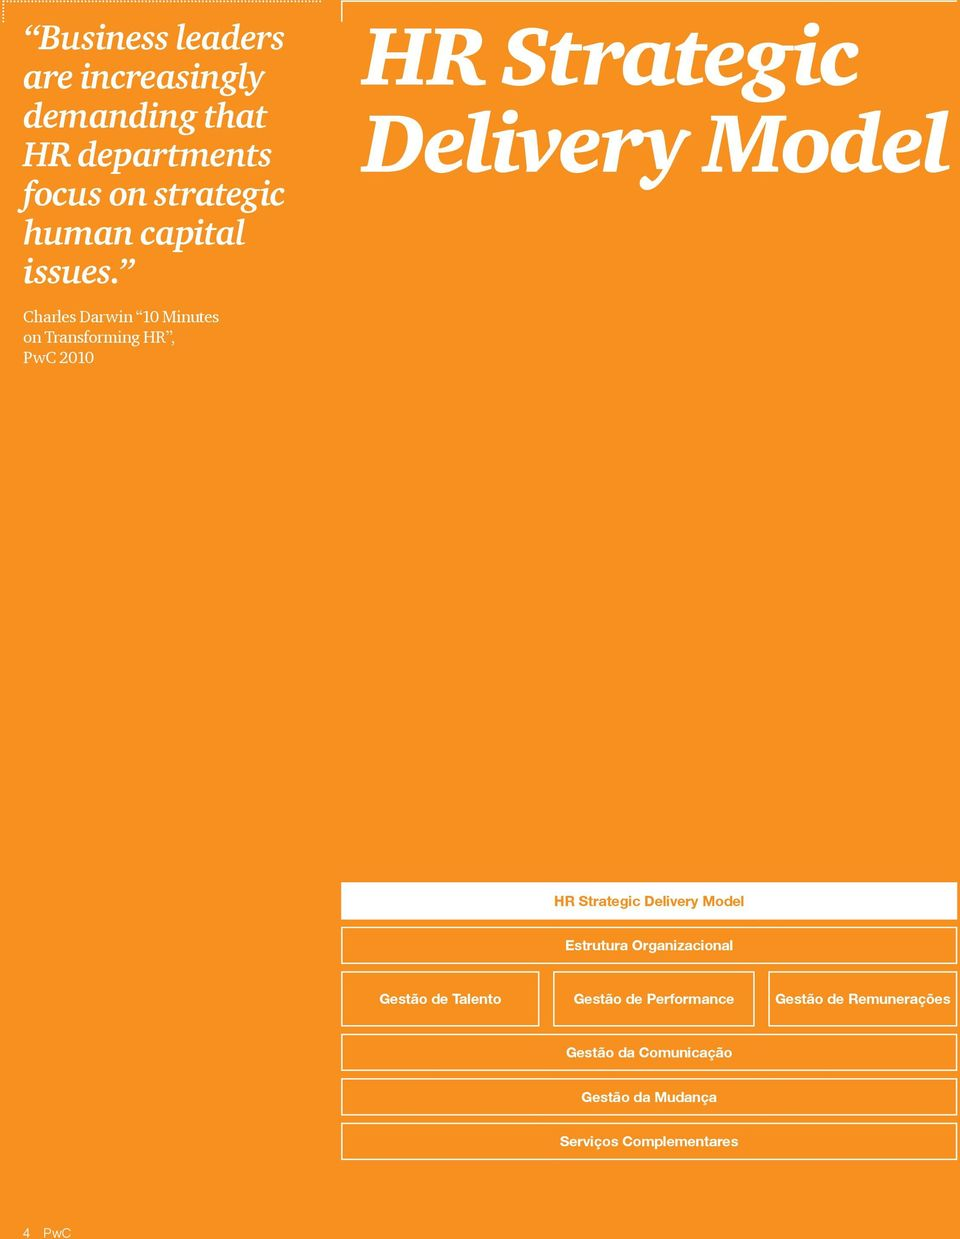 HR Strategic Delivery Model Charles Darwin 10 Minutes on Transforming HR, PwC 2010 HR